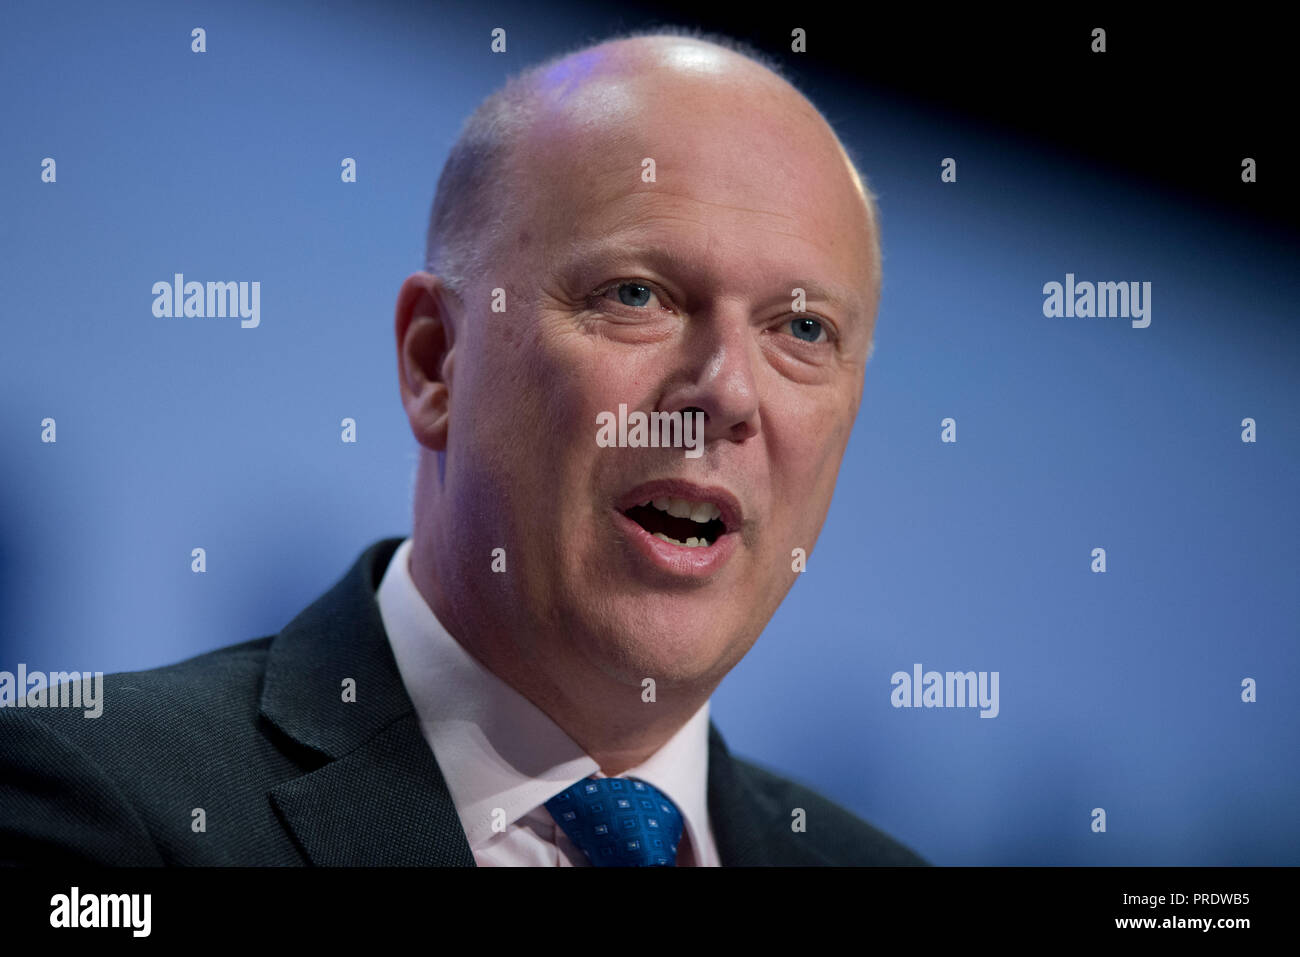 Birmingham, UK. 1st October 2018. Chris Grayling, Secretary of State for Transport and Conservative MP for Epsom and Ewell, speaks at the Conservative Party Conference in Birmingham. © Russell Hart/Alamy Live News. - Stock Image